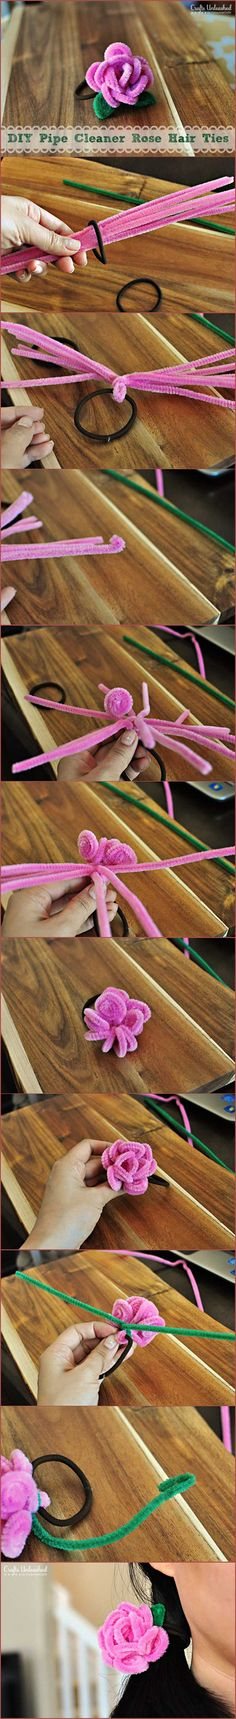 DIY Pipe Cleaner Rose Hair Ties. cute @Terri Osborne McElwee Osborne McElwee Corbett , nice for your young crafting friends !!